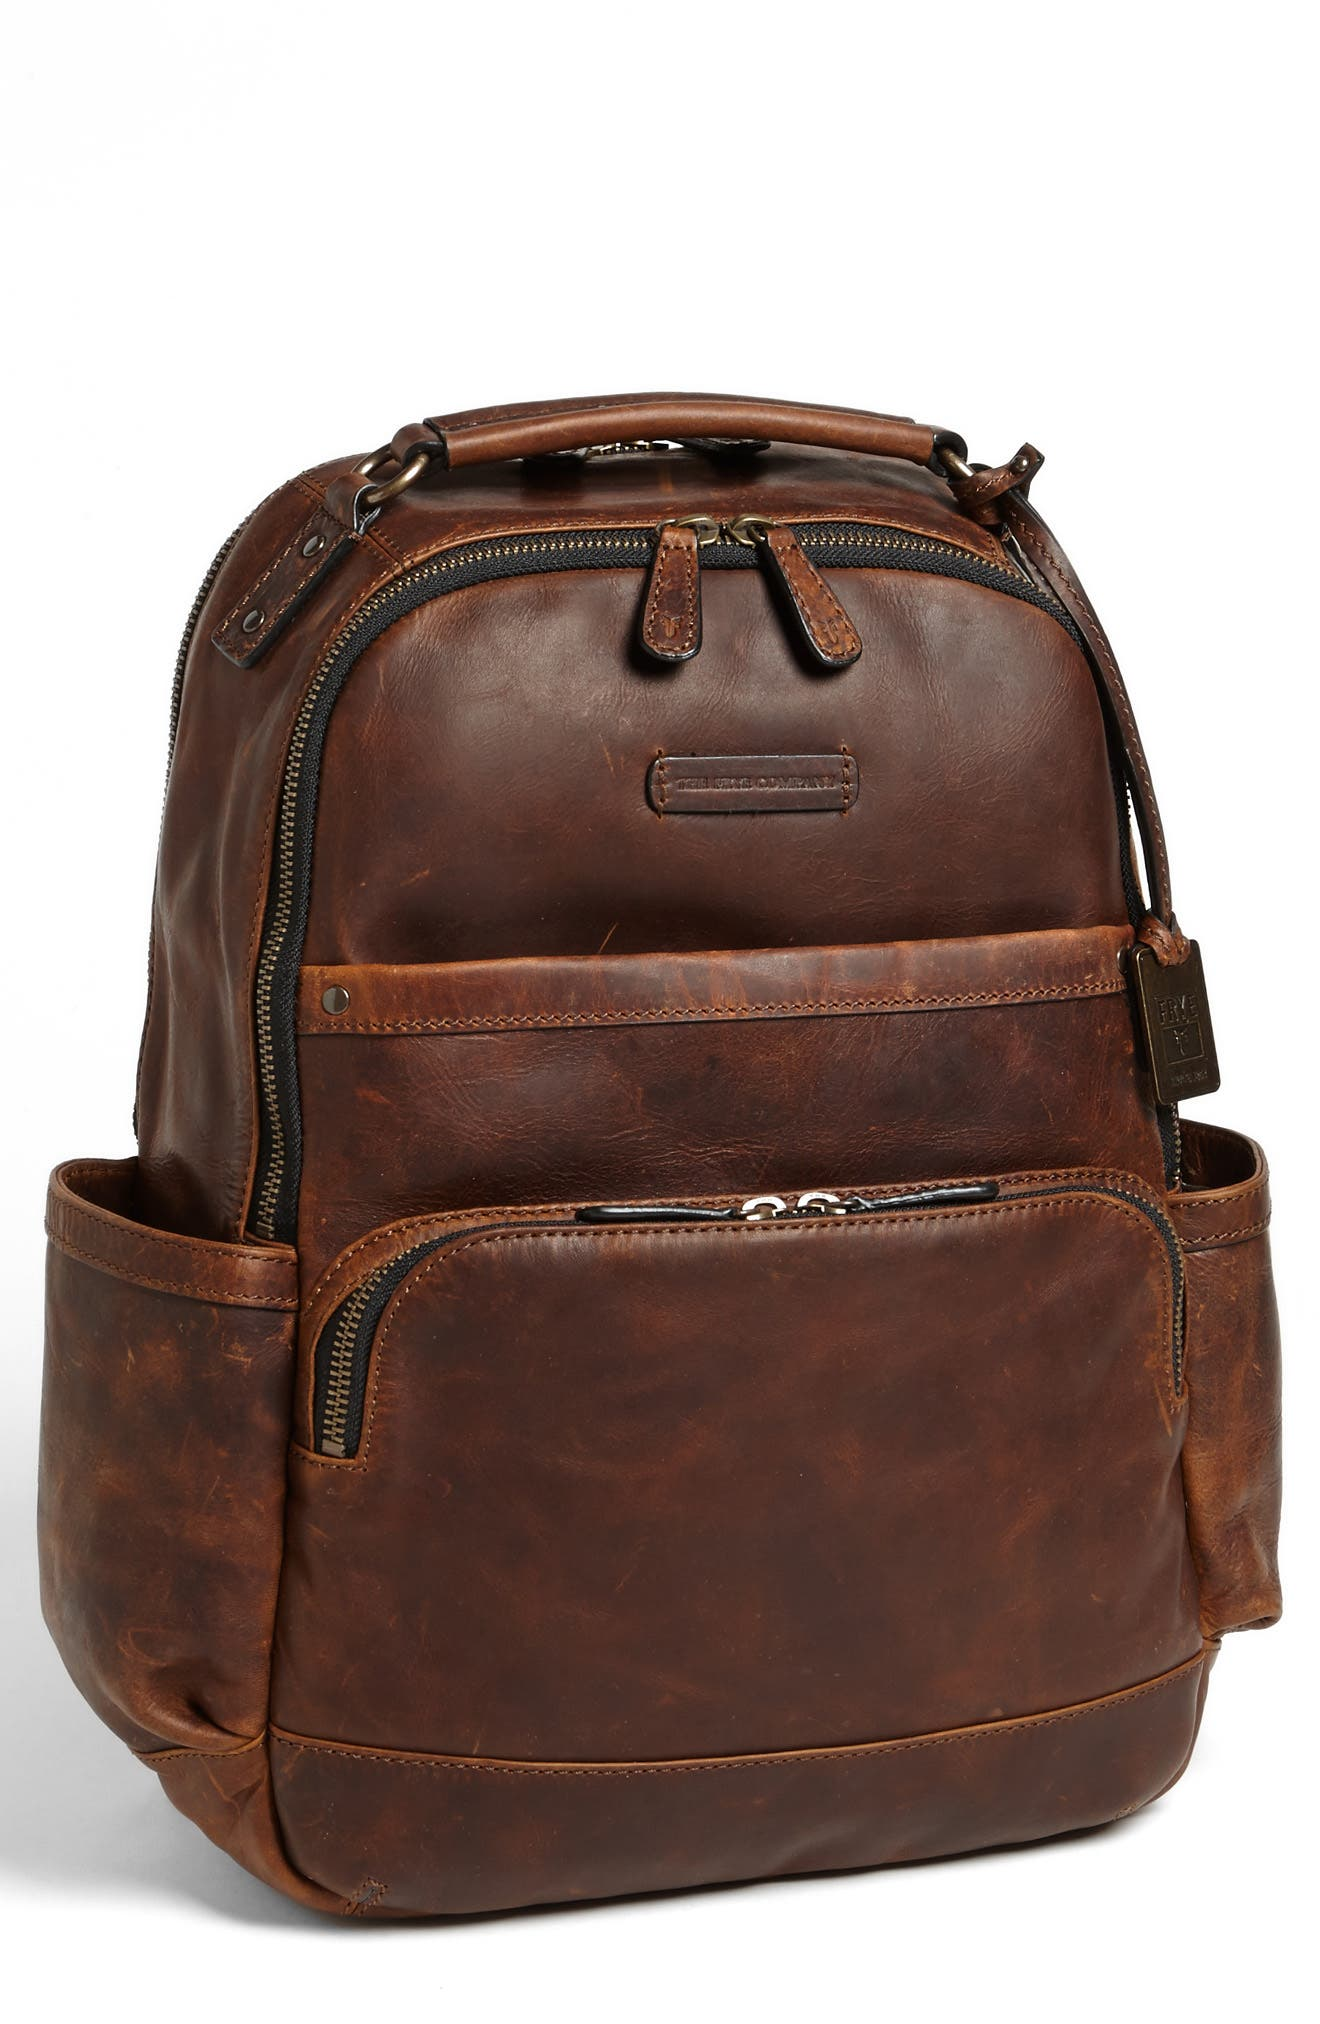 FRYE 'Logan' Leather Backpack - Brown in Dark Brown